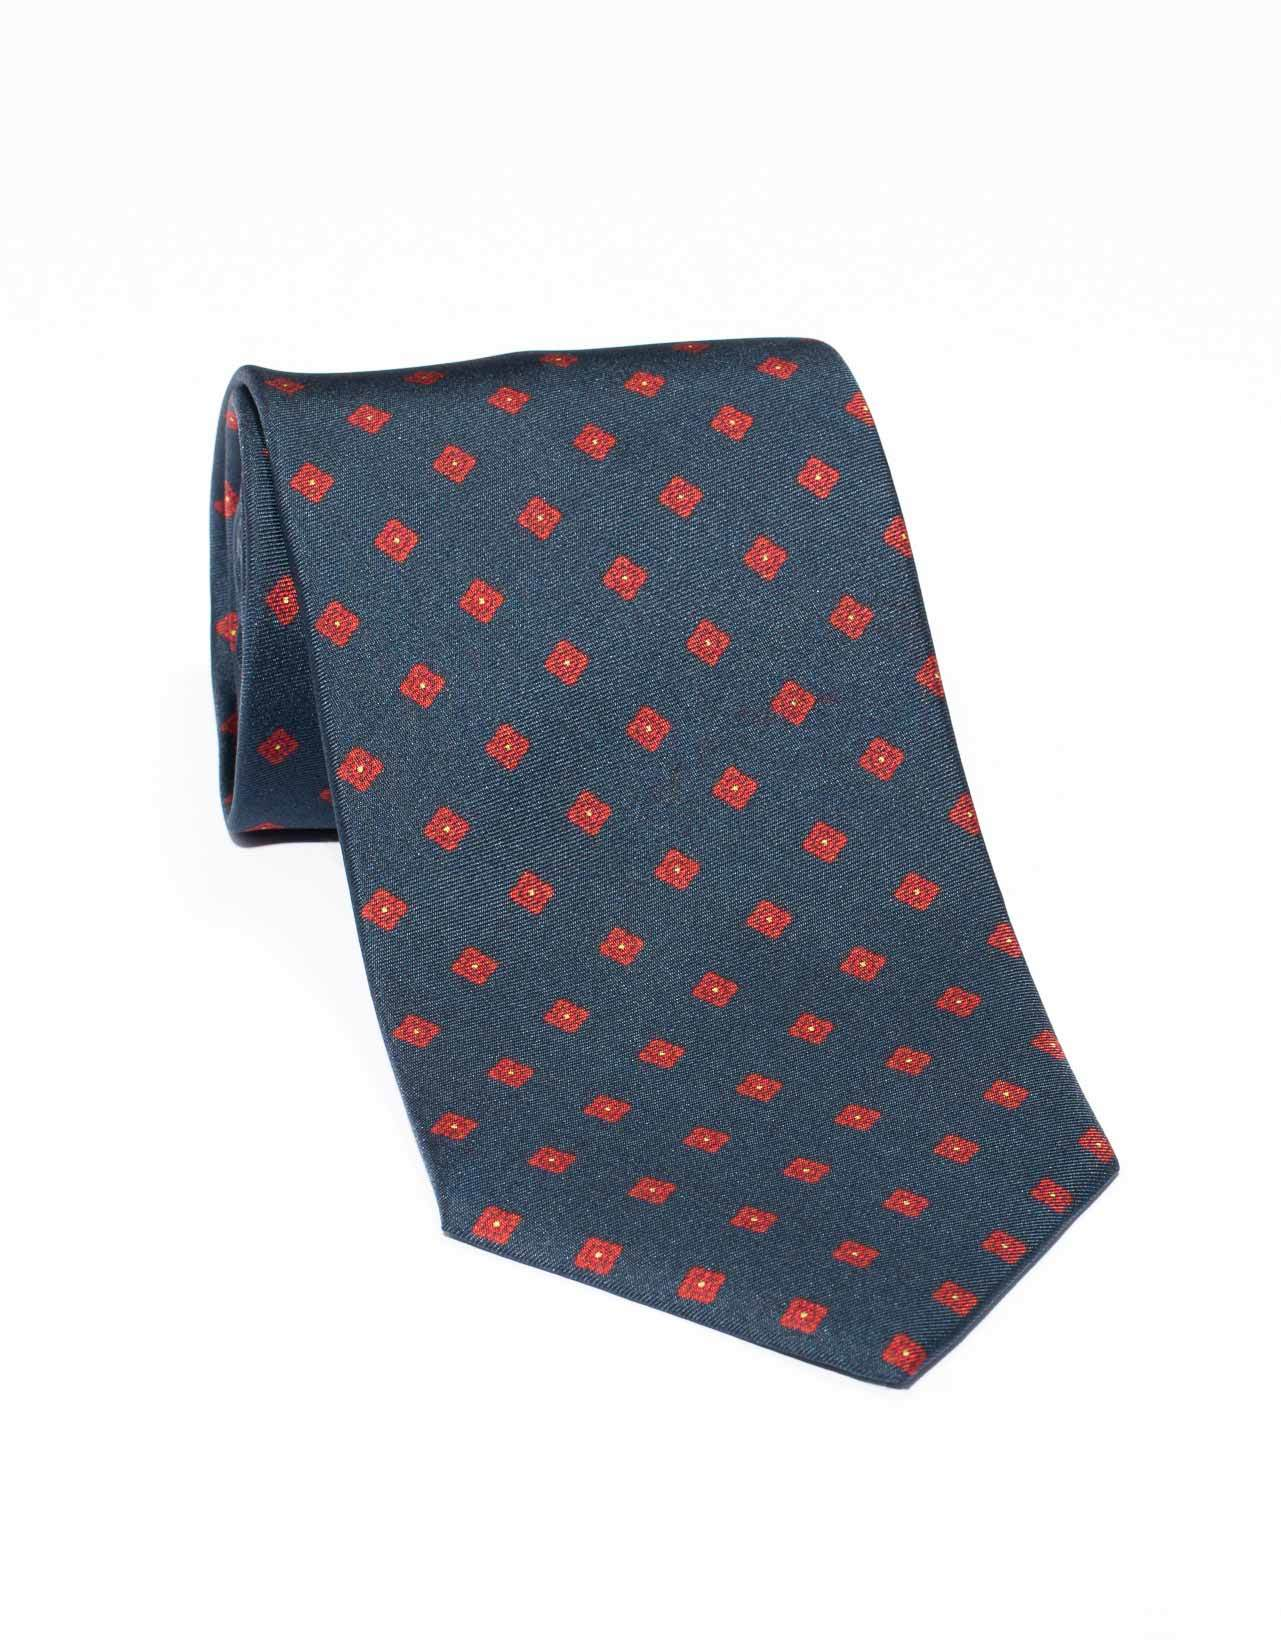 SILK SMALL SQUARE TIE- NAVY/RED